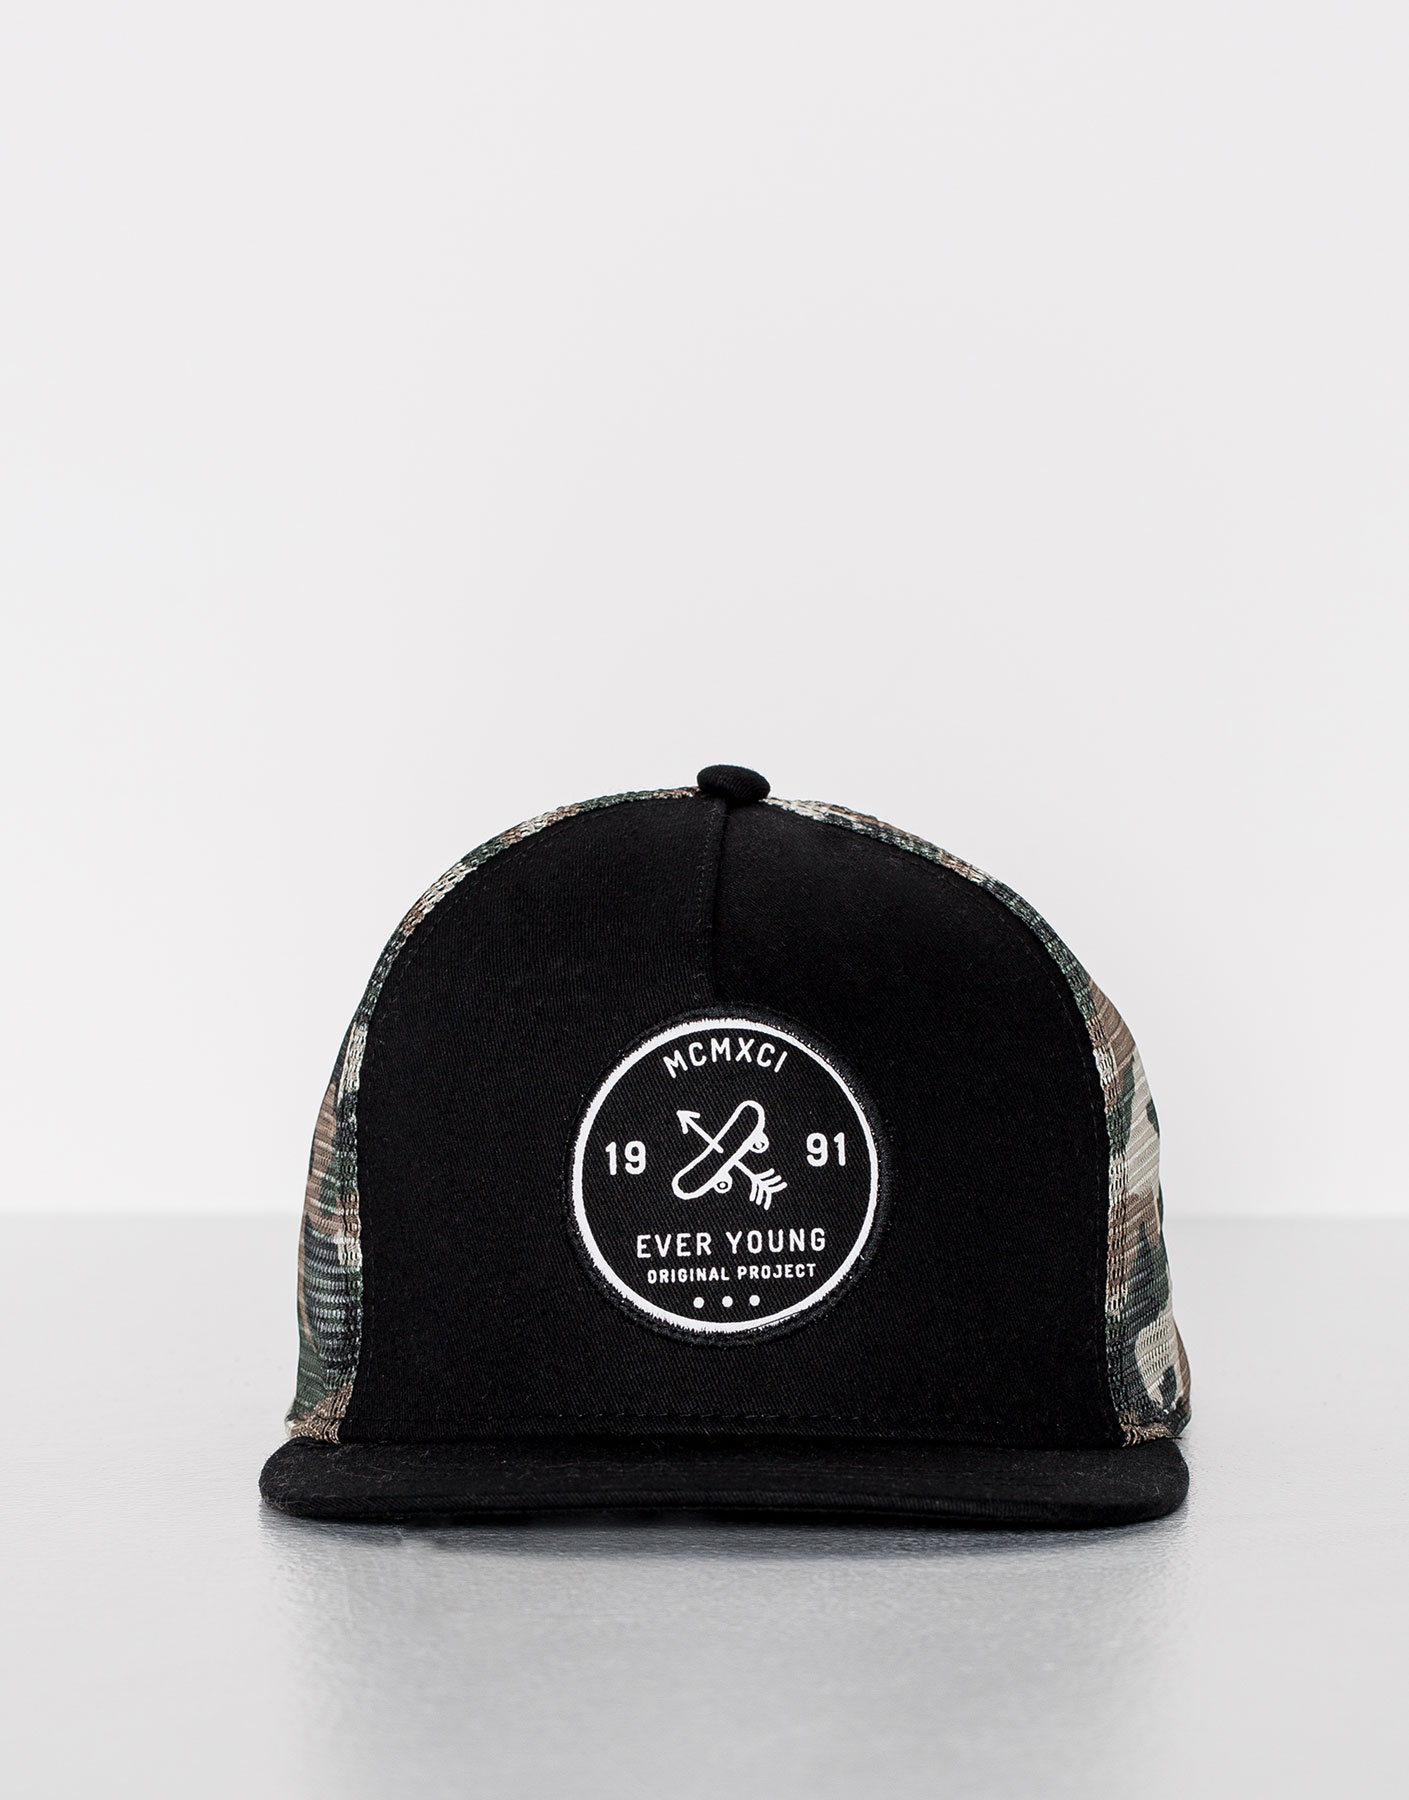 Gorra camuflaje - ever young